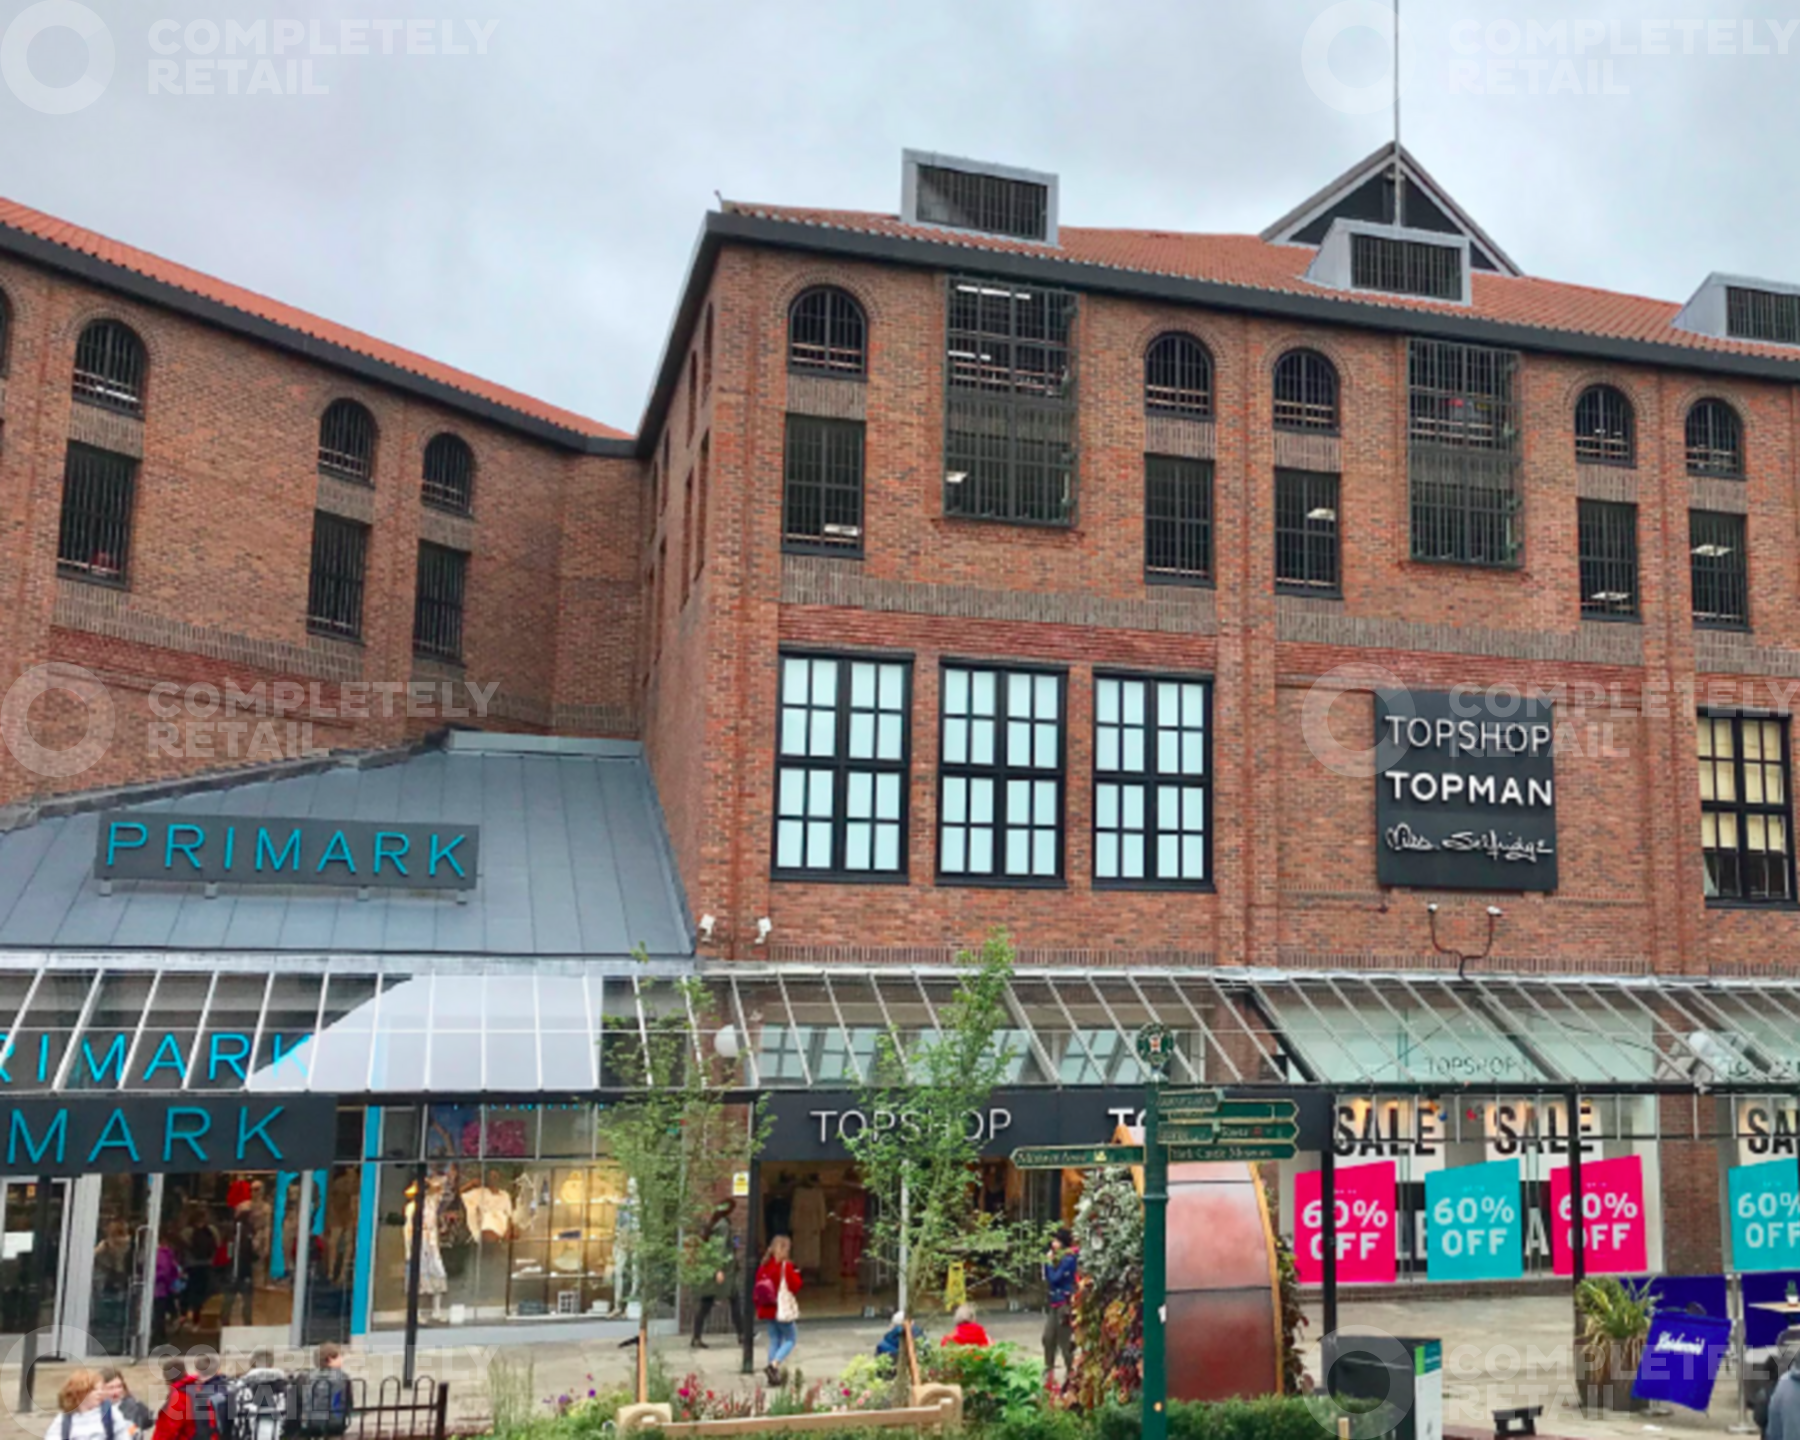 3 St Mary's Square, Coppergate Shopping Centre, York